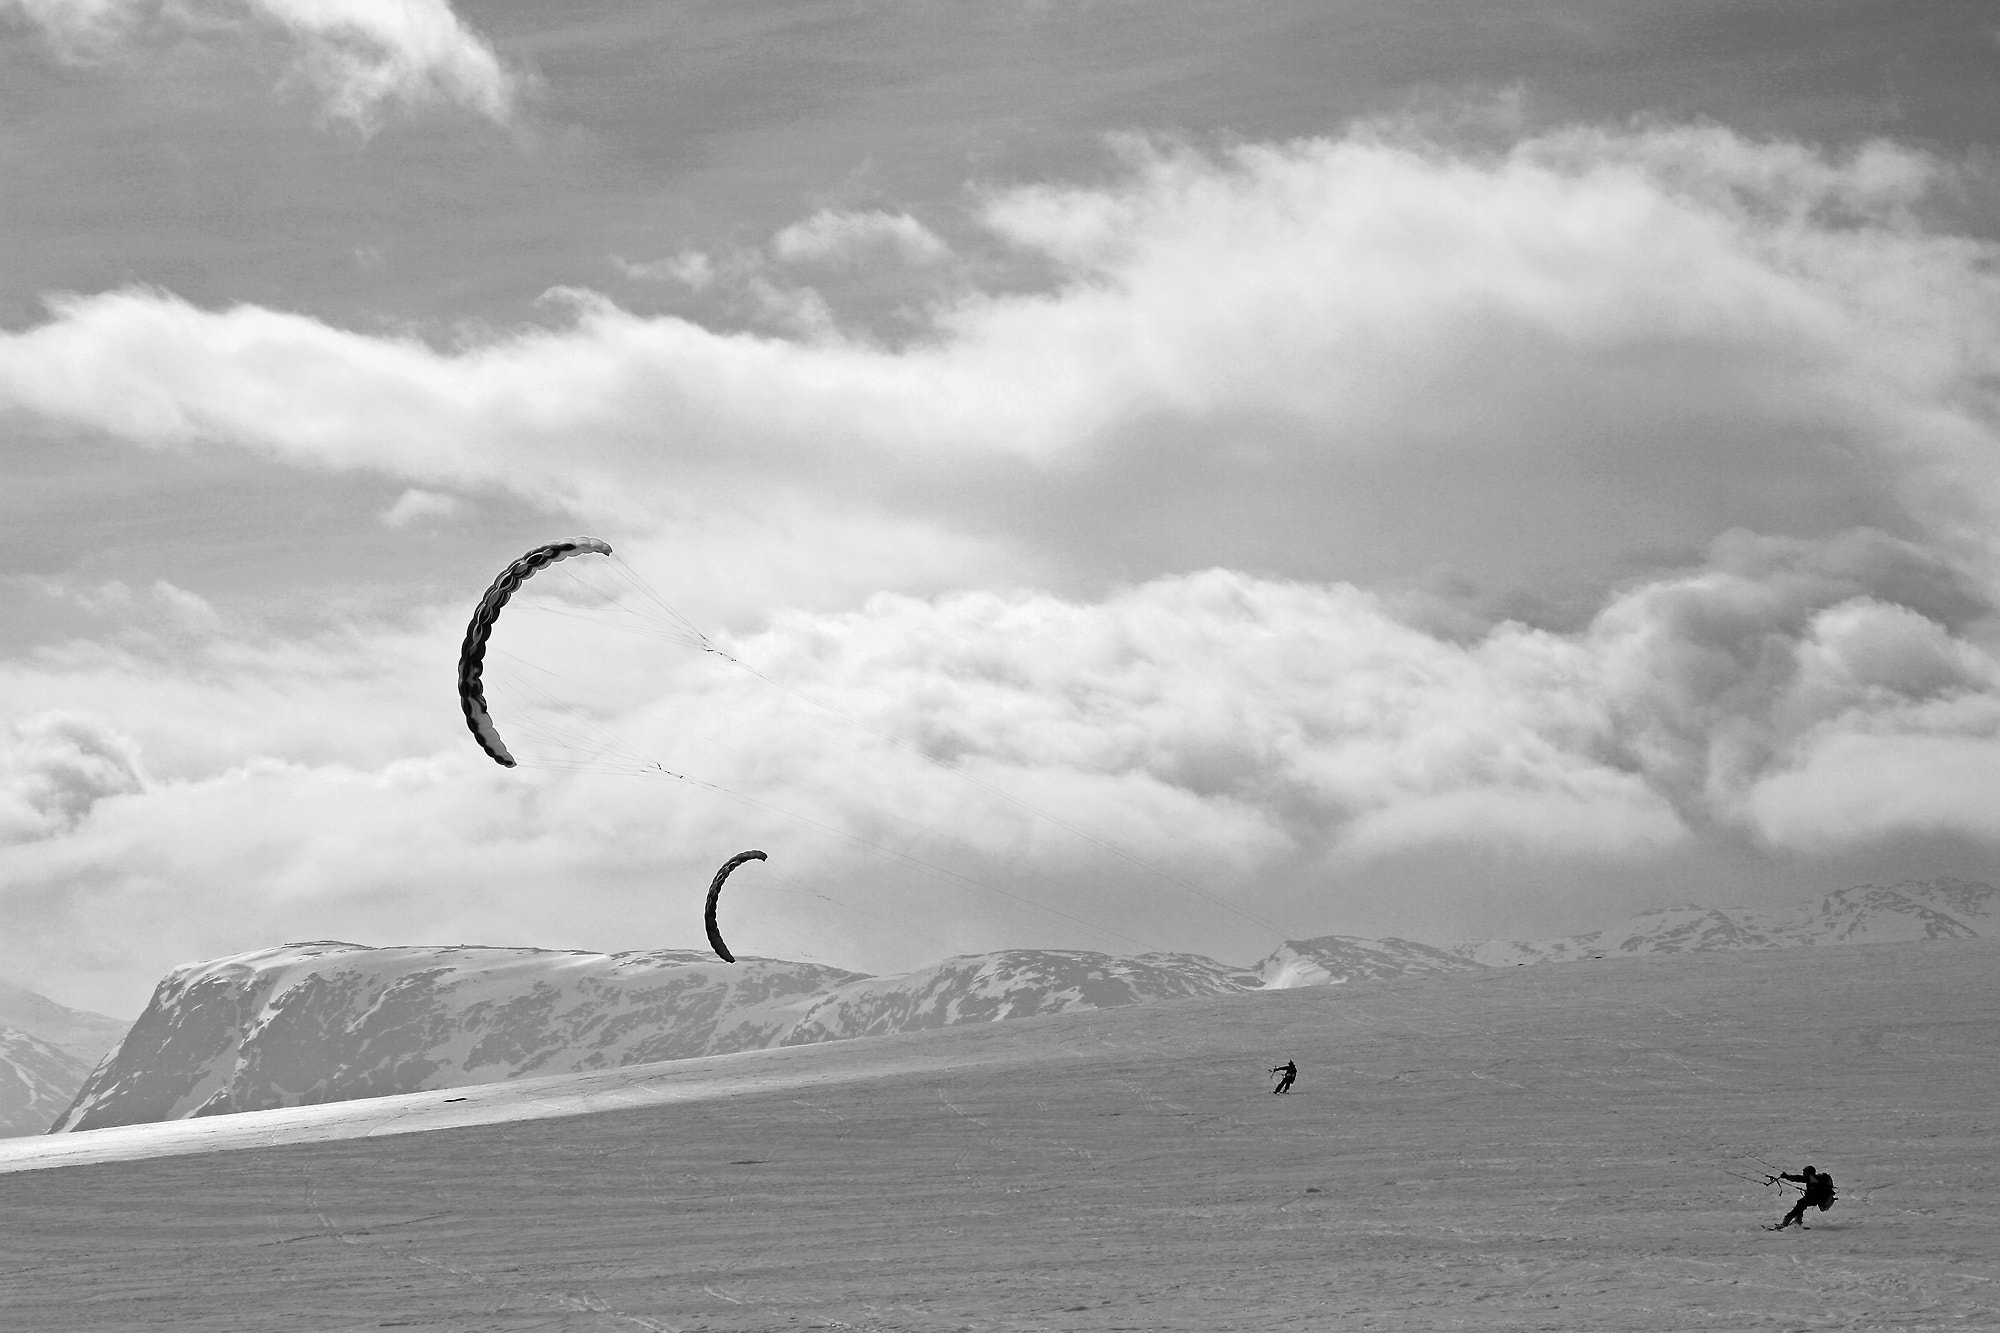 Photograph Kiting in Norway by Snorre Veggan on 500px